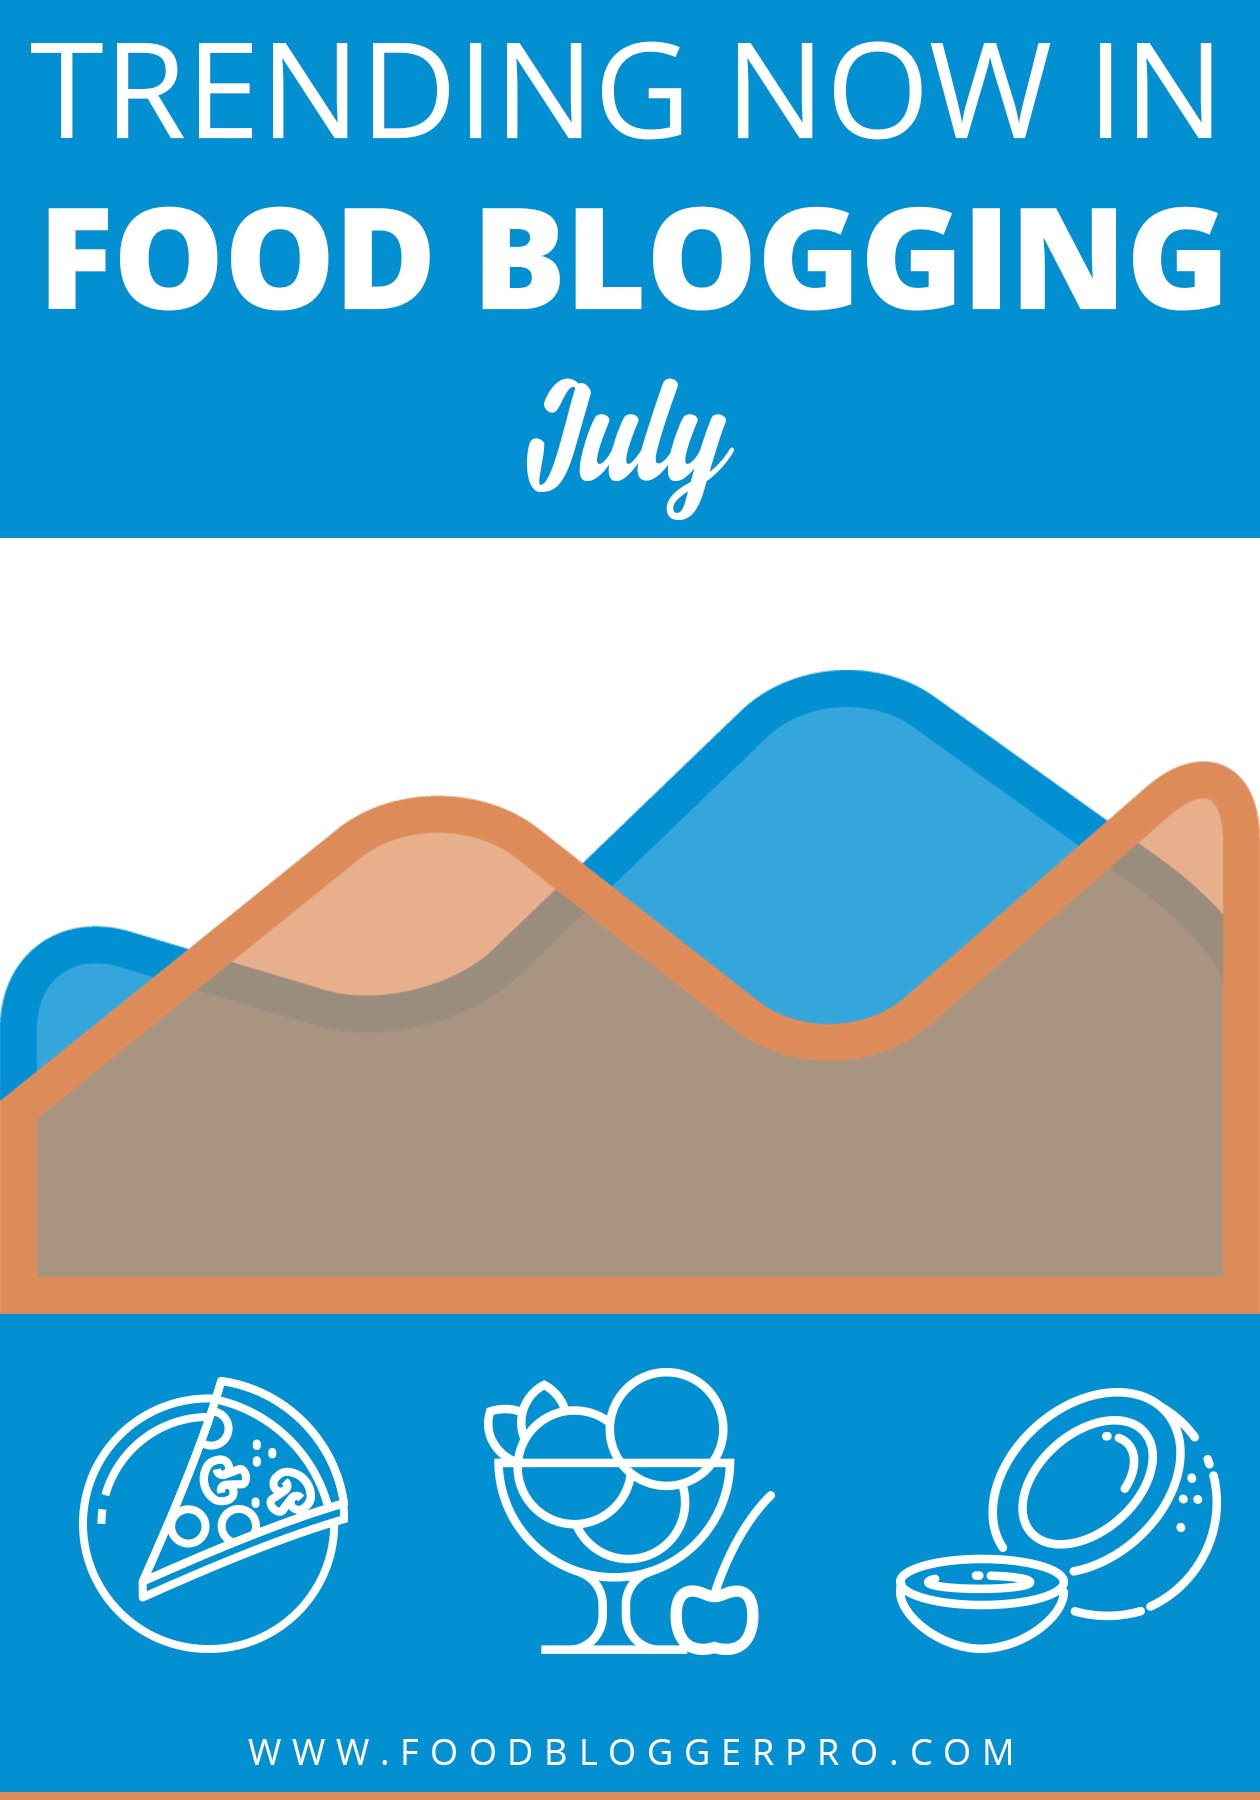 Blue graphic with orange graph that reads 'Trending Now in Food Blogging - July'